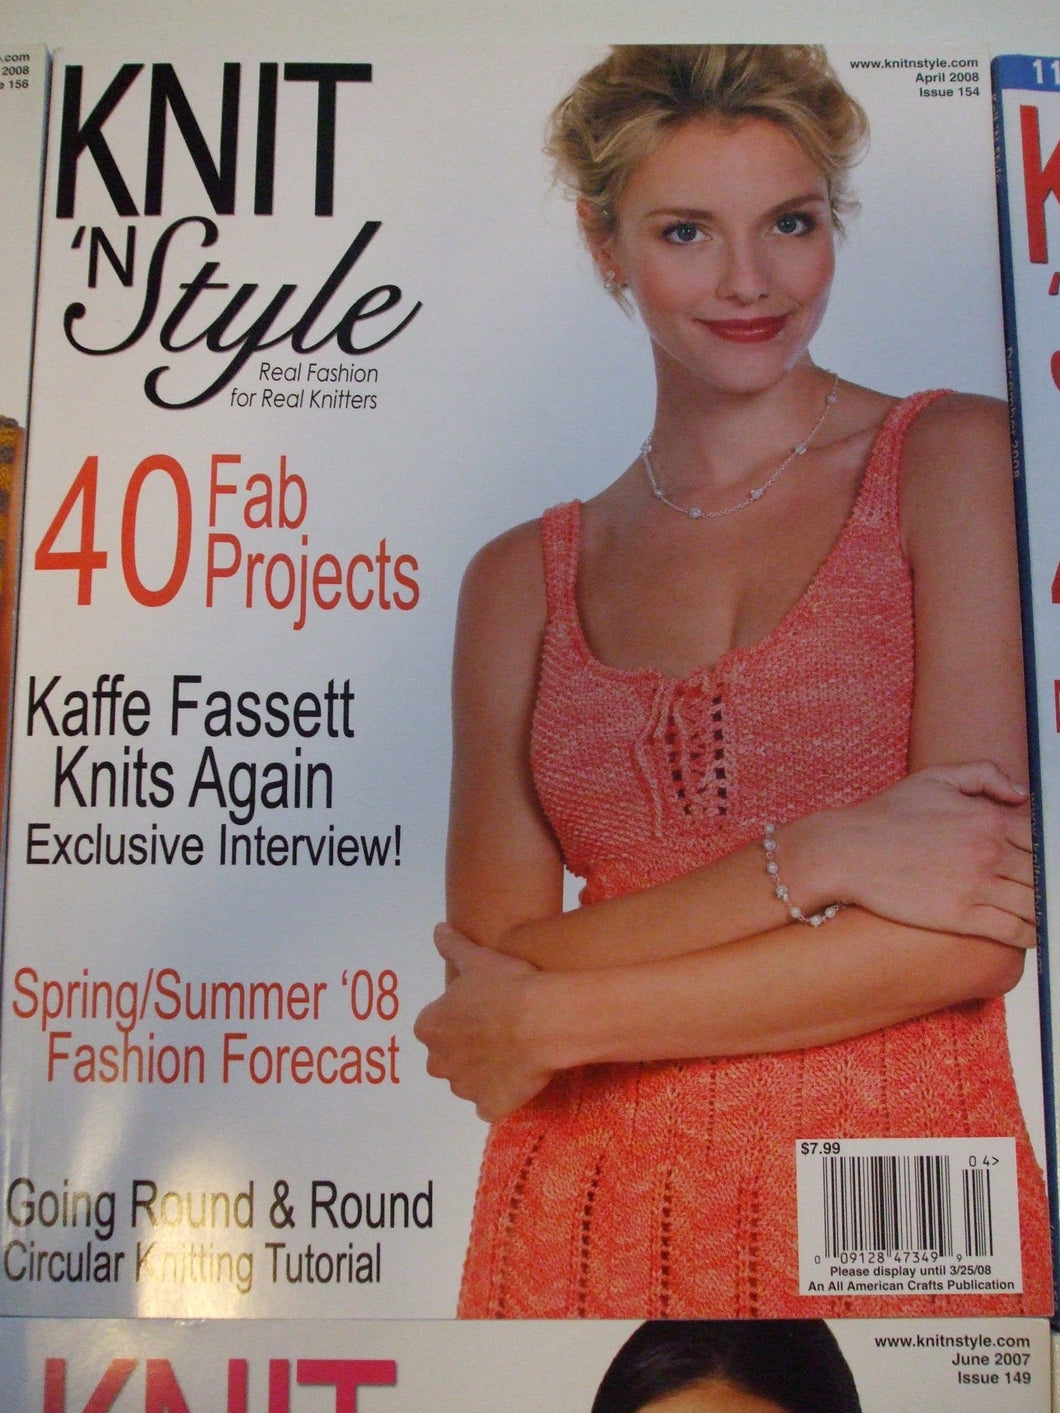 Knit & Style Magazine April 2008 #154